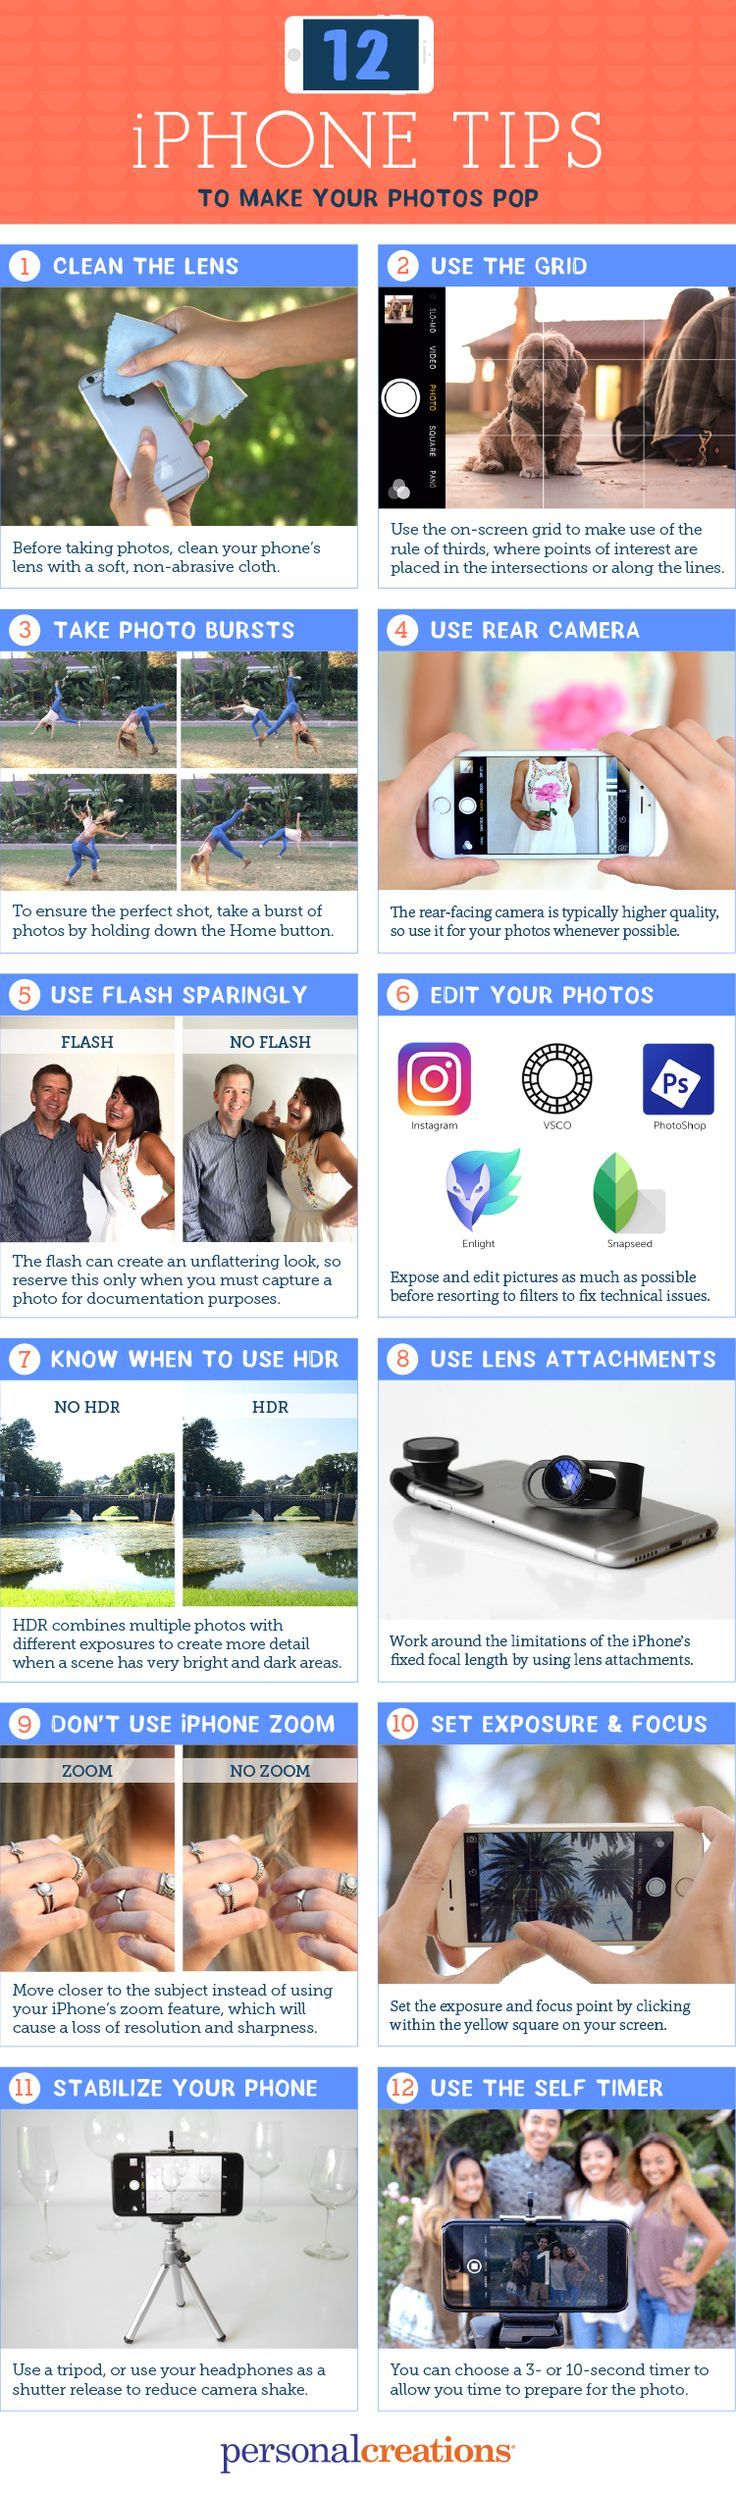 12 iPhone Photography Tips to Make Your Photos Pop - Personal Creations Blog Now YOU Can Create Mind-Blowing Artistic Images With Top Secret Photography Tutorials With Step-By-Step Instructions! http://trick-photo-graphybook-today.blogspot.com?prod=5R4p5kky